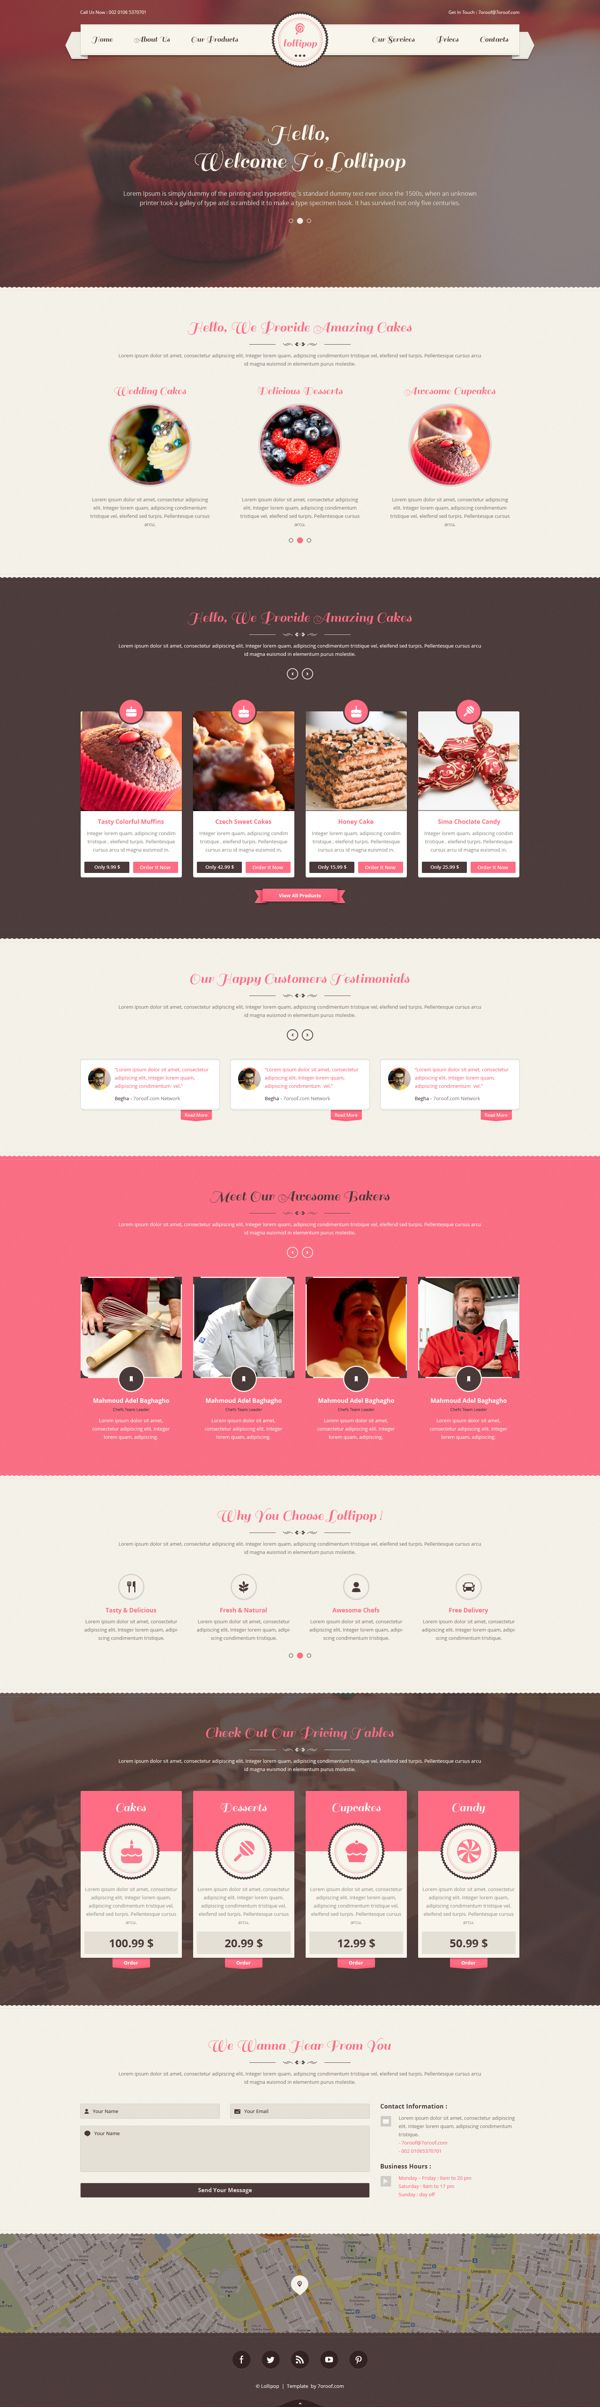 Lollipop - Awesome Sweets & Cakes Template on Web Design Served